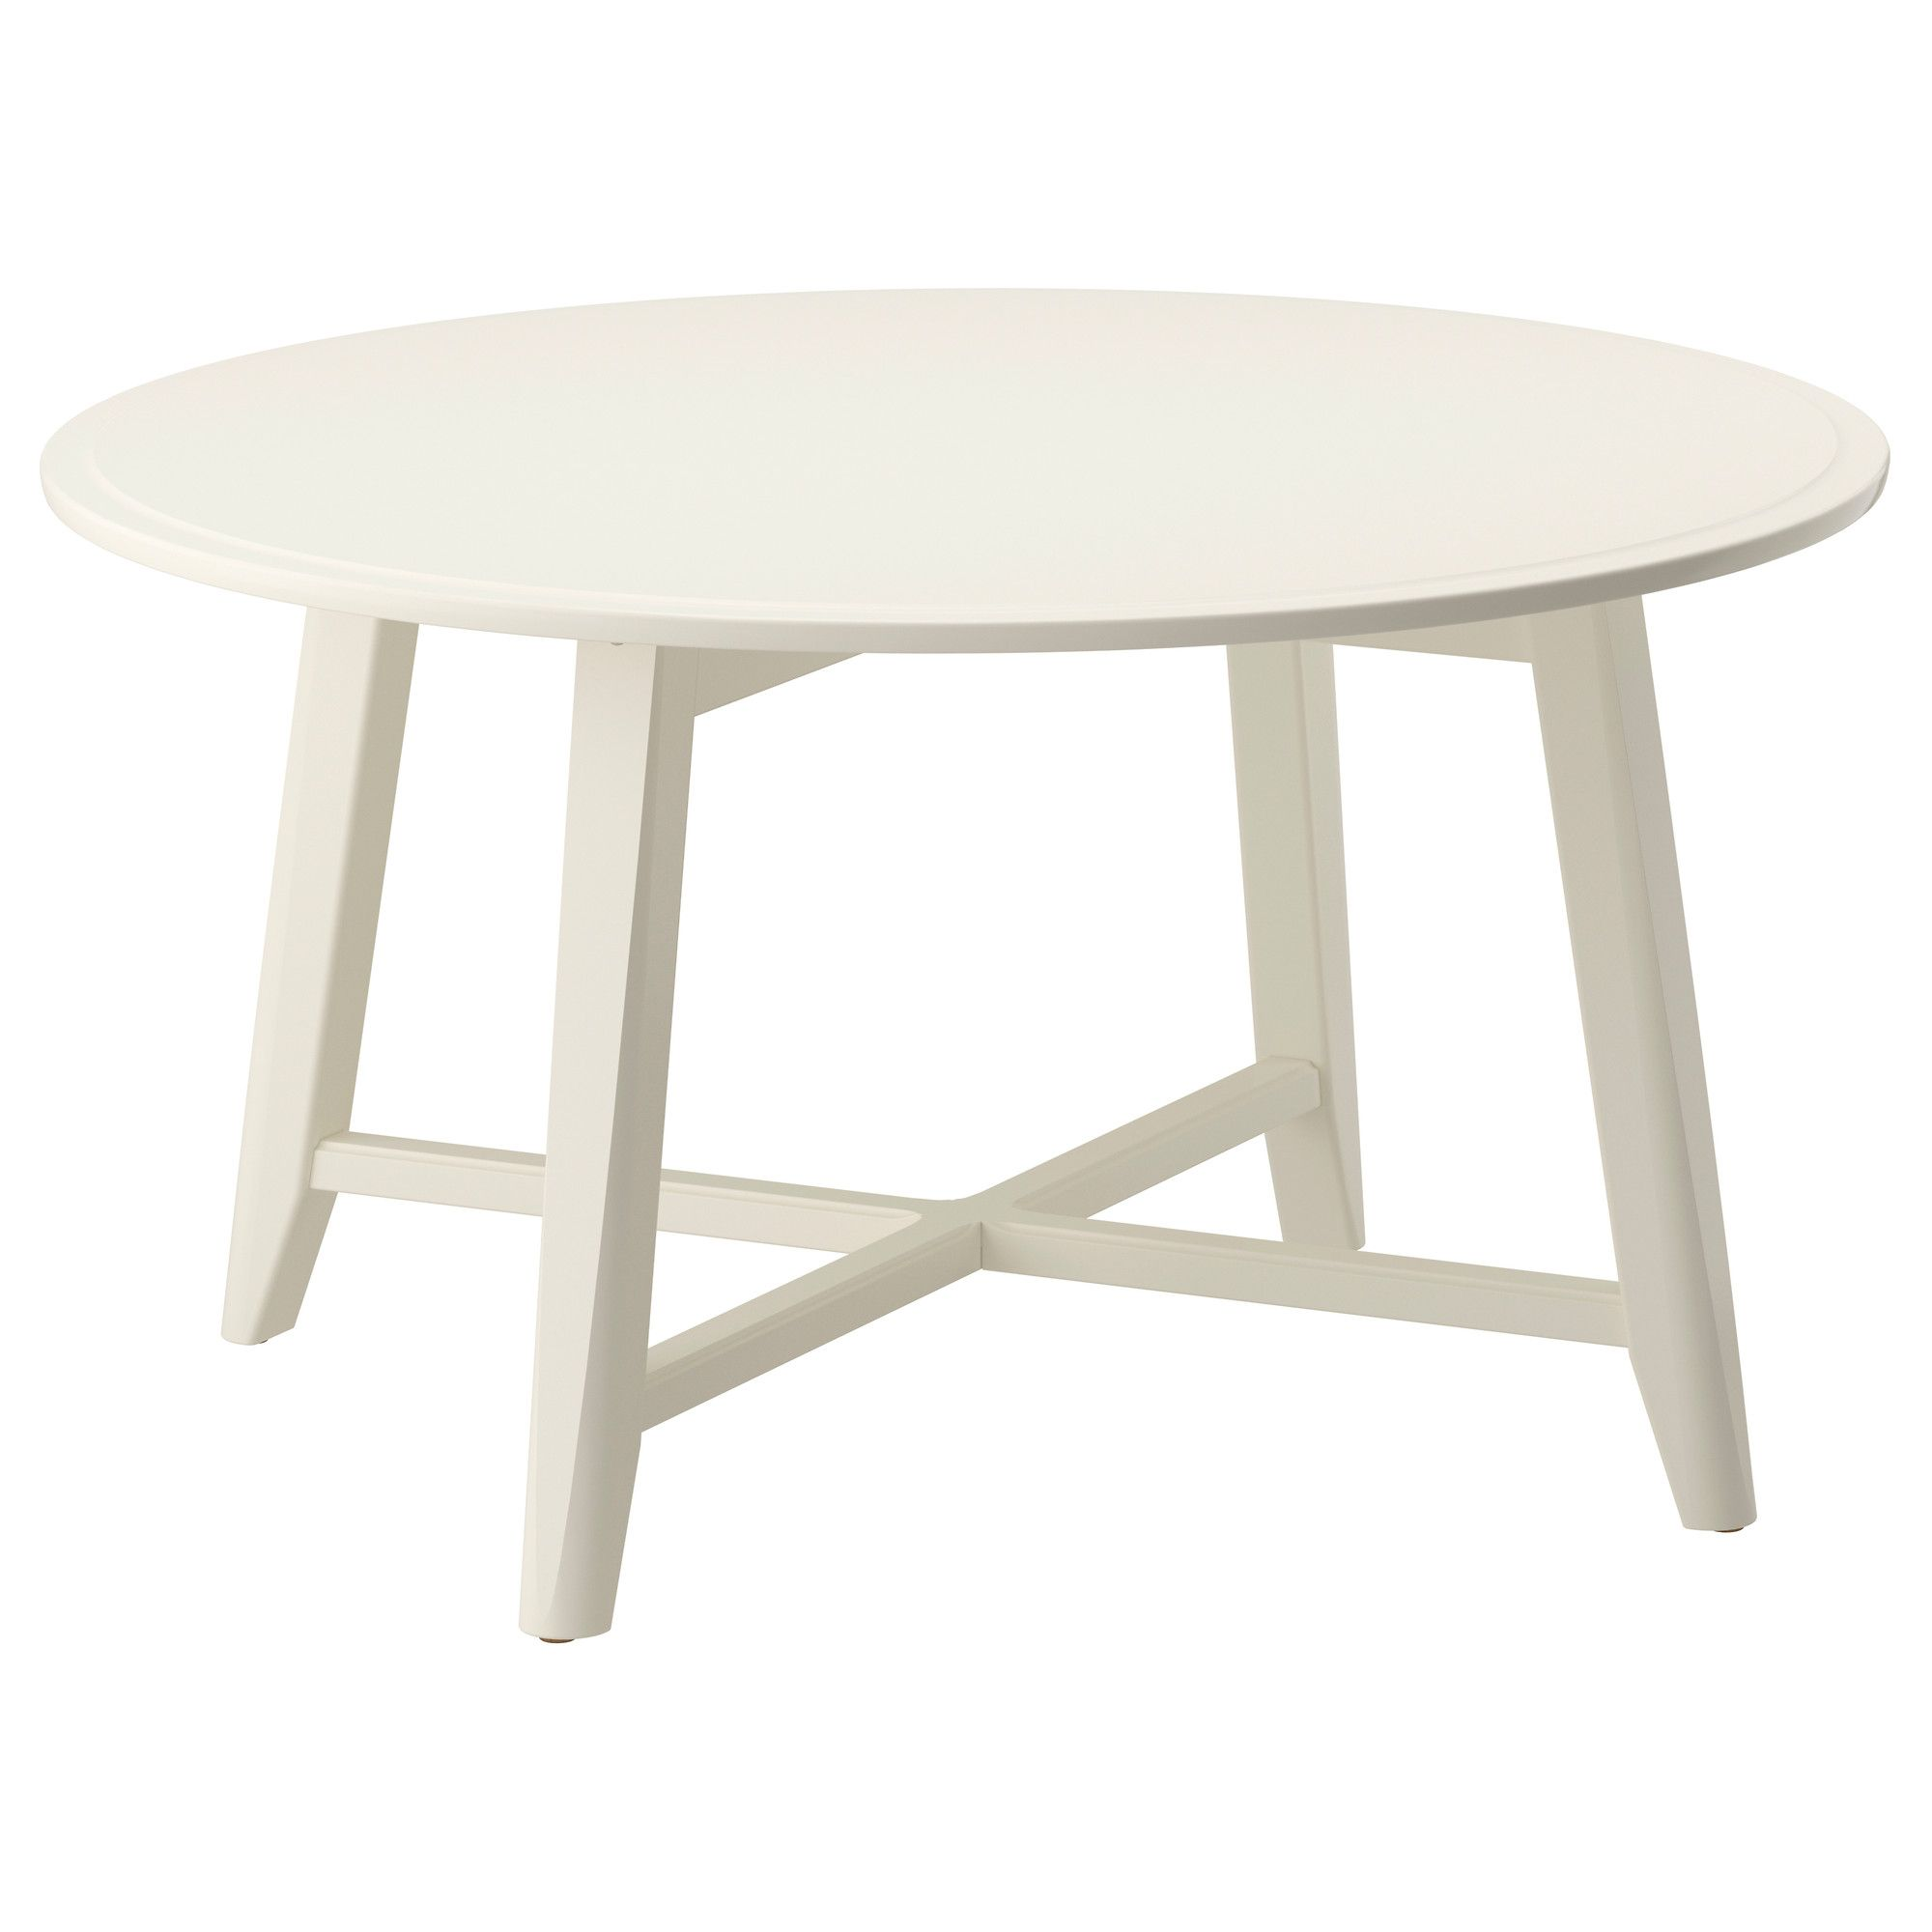 IKEA   KRAGSTA, Coffee Table, White, , The Round Shape Gives You A Generous Table  Top For Trays, Coffee Or Tea Services. The Dimensions Make The Table Easy  ...